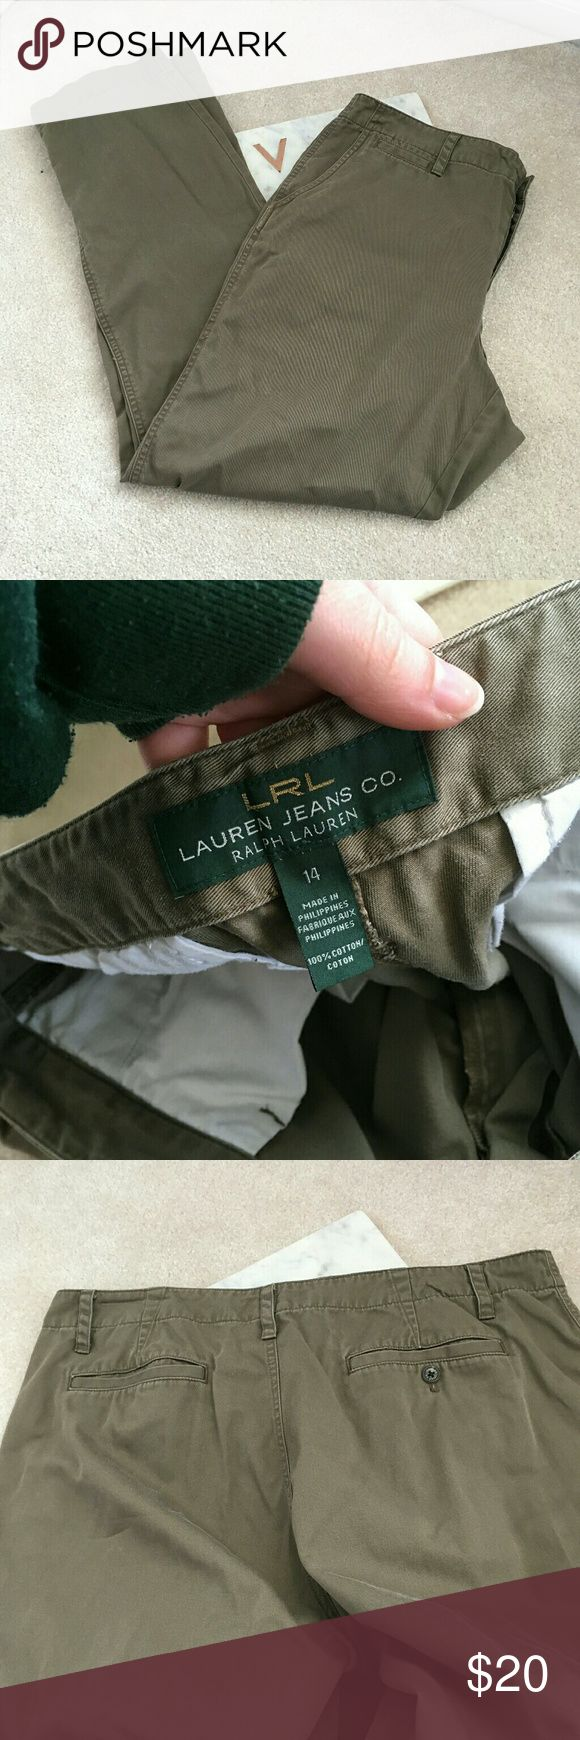 lauren ralph lauren womens 14 jeans co khaki green These work pants are the perfect khaki pants. They are comfortable and well made! They have a nice straight leg and have no flaws. Size 14. Ralph Lauren Pants Straight Leg